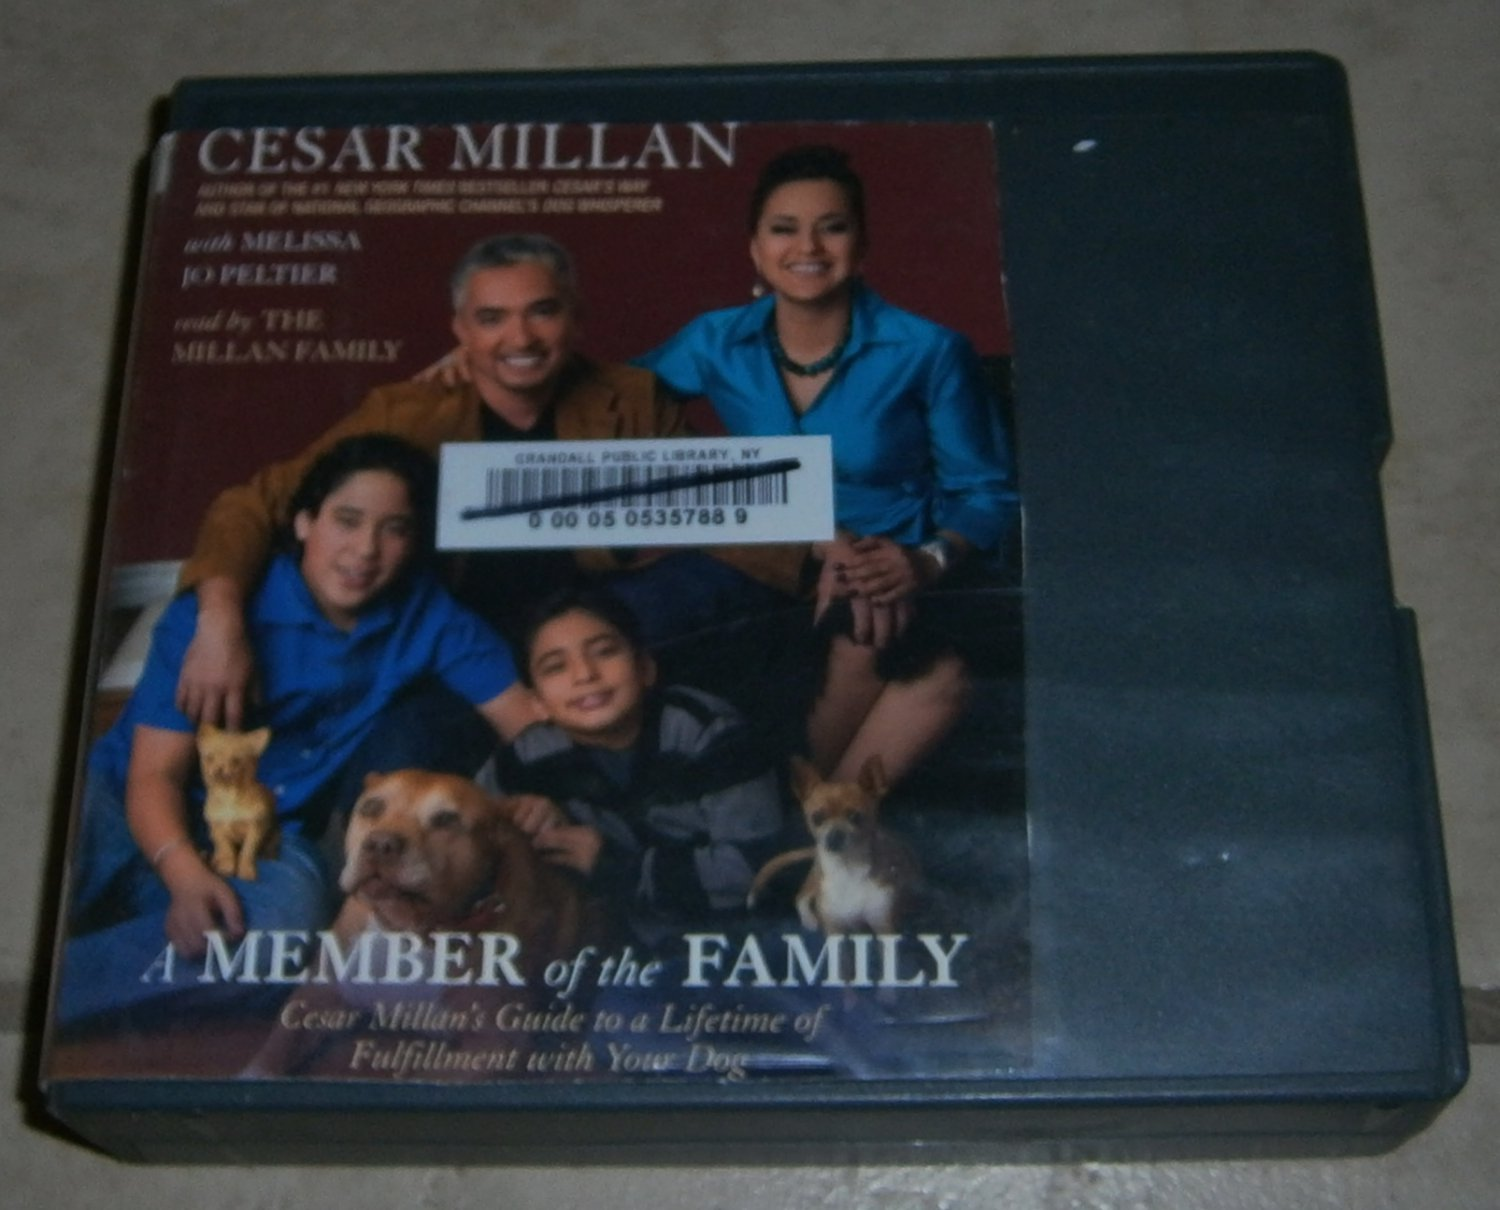 A Member of the Family: Cesar Millan's Guide to a Lifetime of Fulfillment with Your Dog (Audio CD)